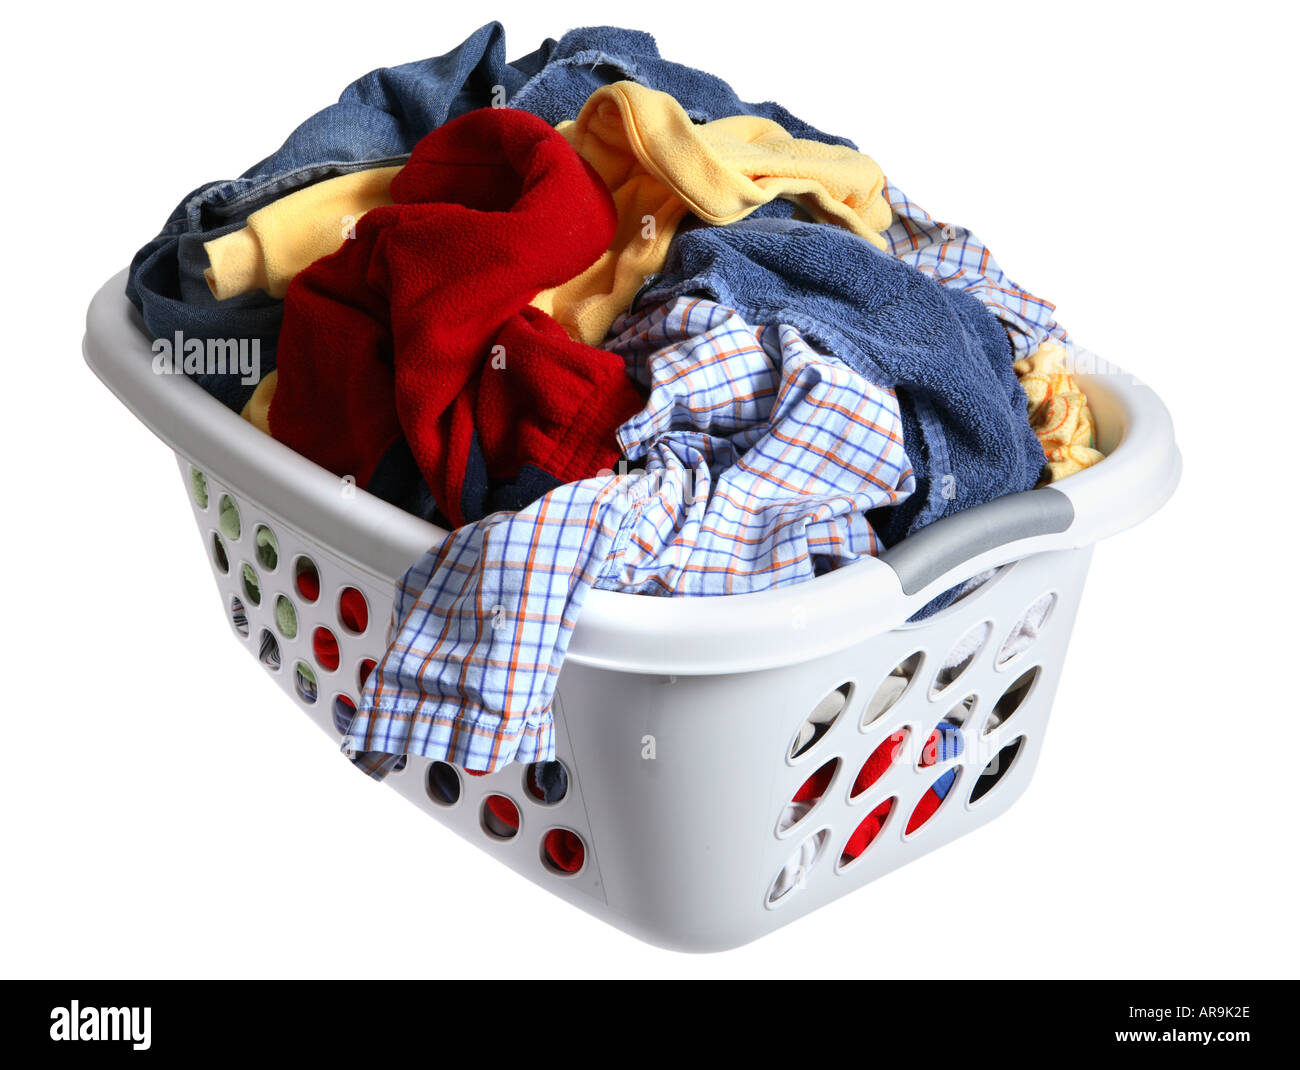 Dirty Laundry Baskets Laundry Basket Stock Photos Laundry Basket Stock Images Alamy